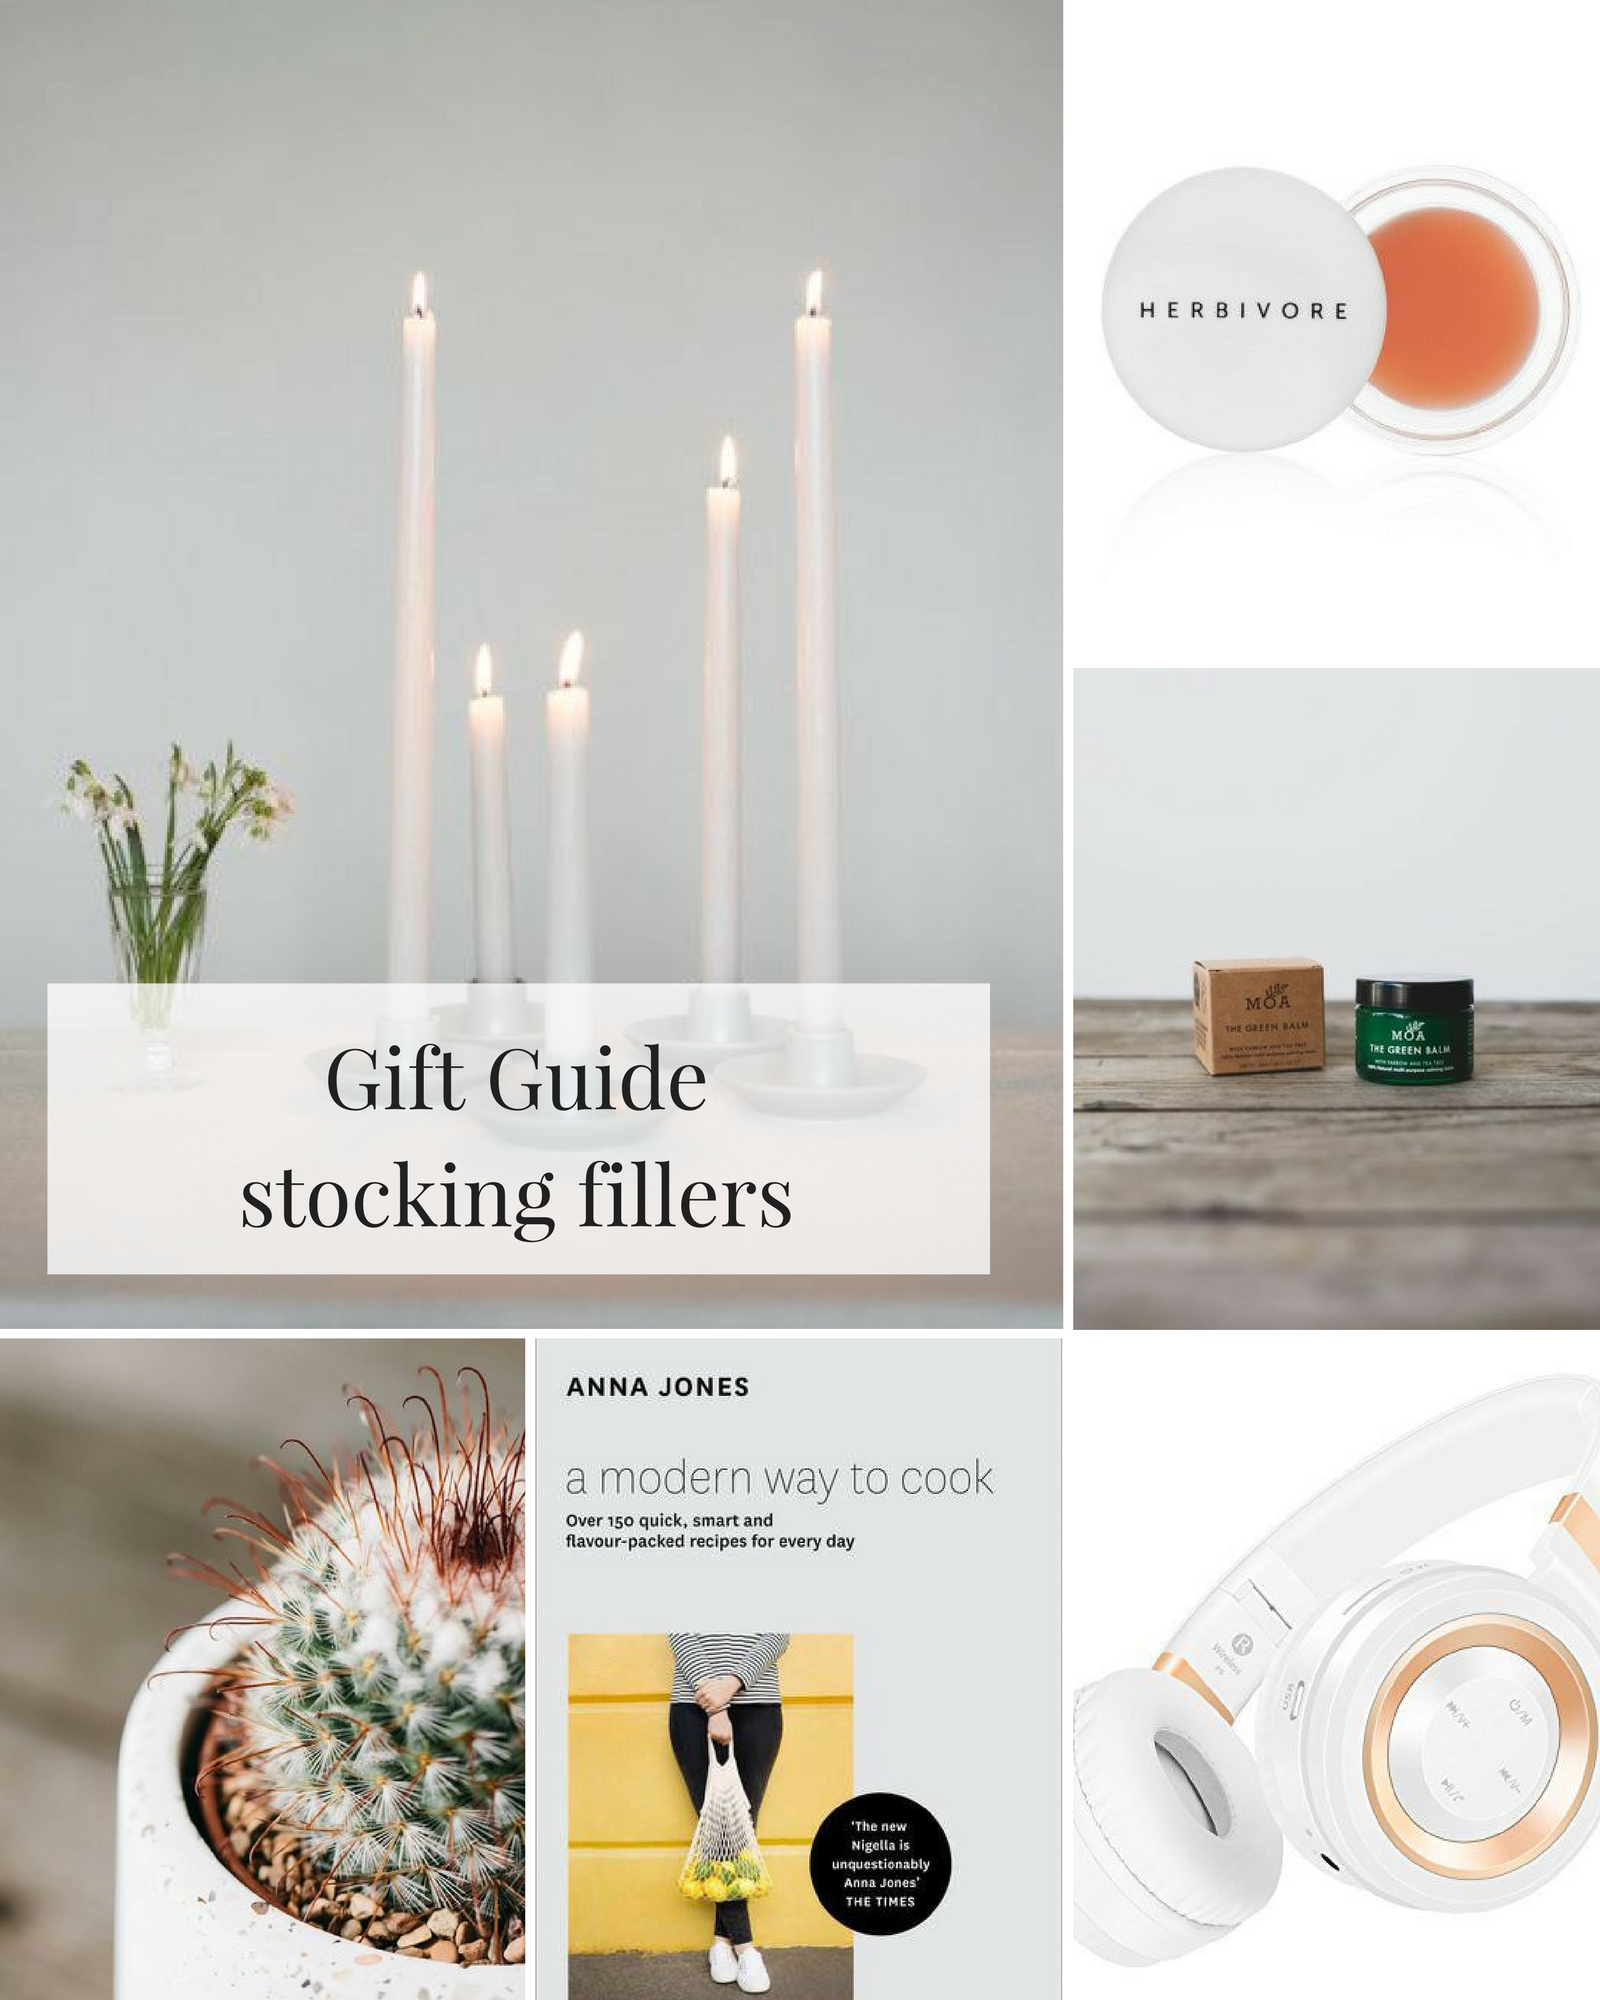 copy-of-gift-guide-stocking-fillers-1